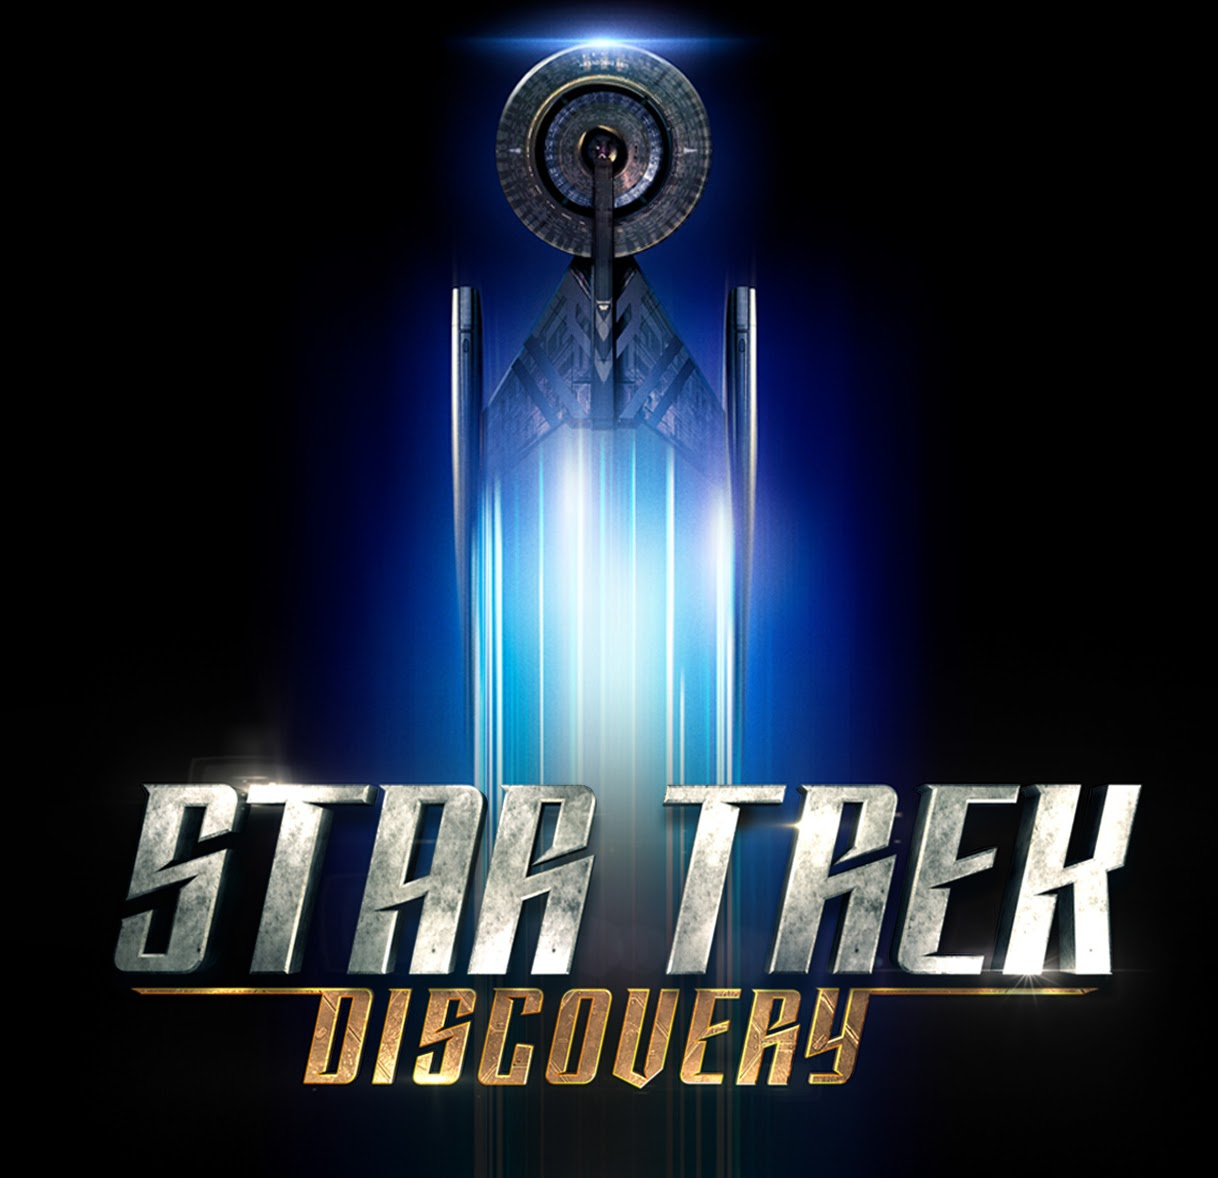 CBS Have Also Released An Animated Version Of This Image Via Twitter Discovery Begins September 24 StarTrekDiscovery